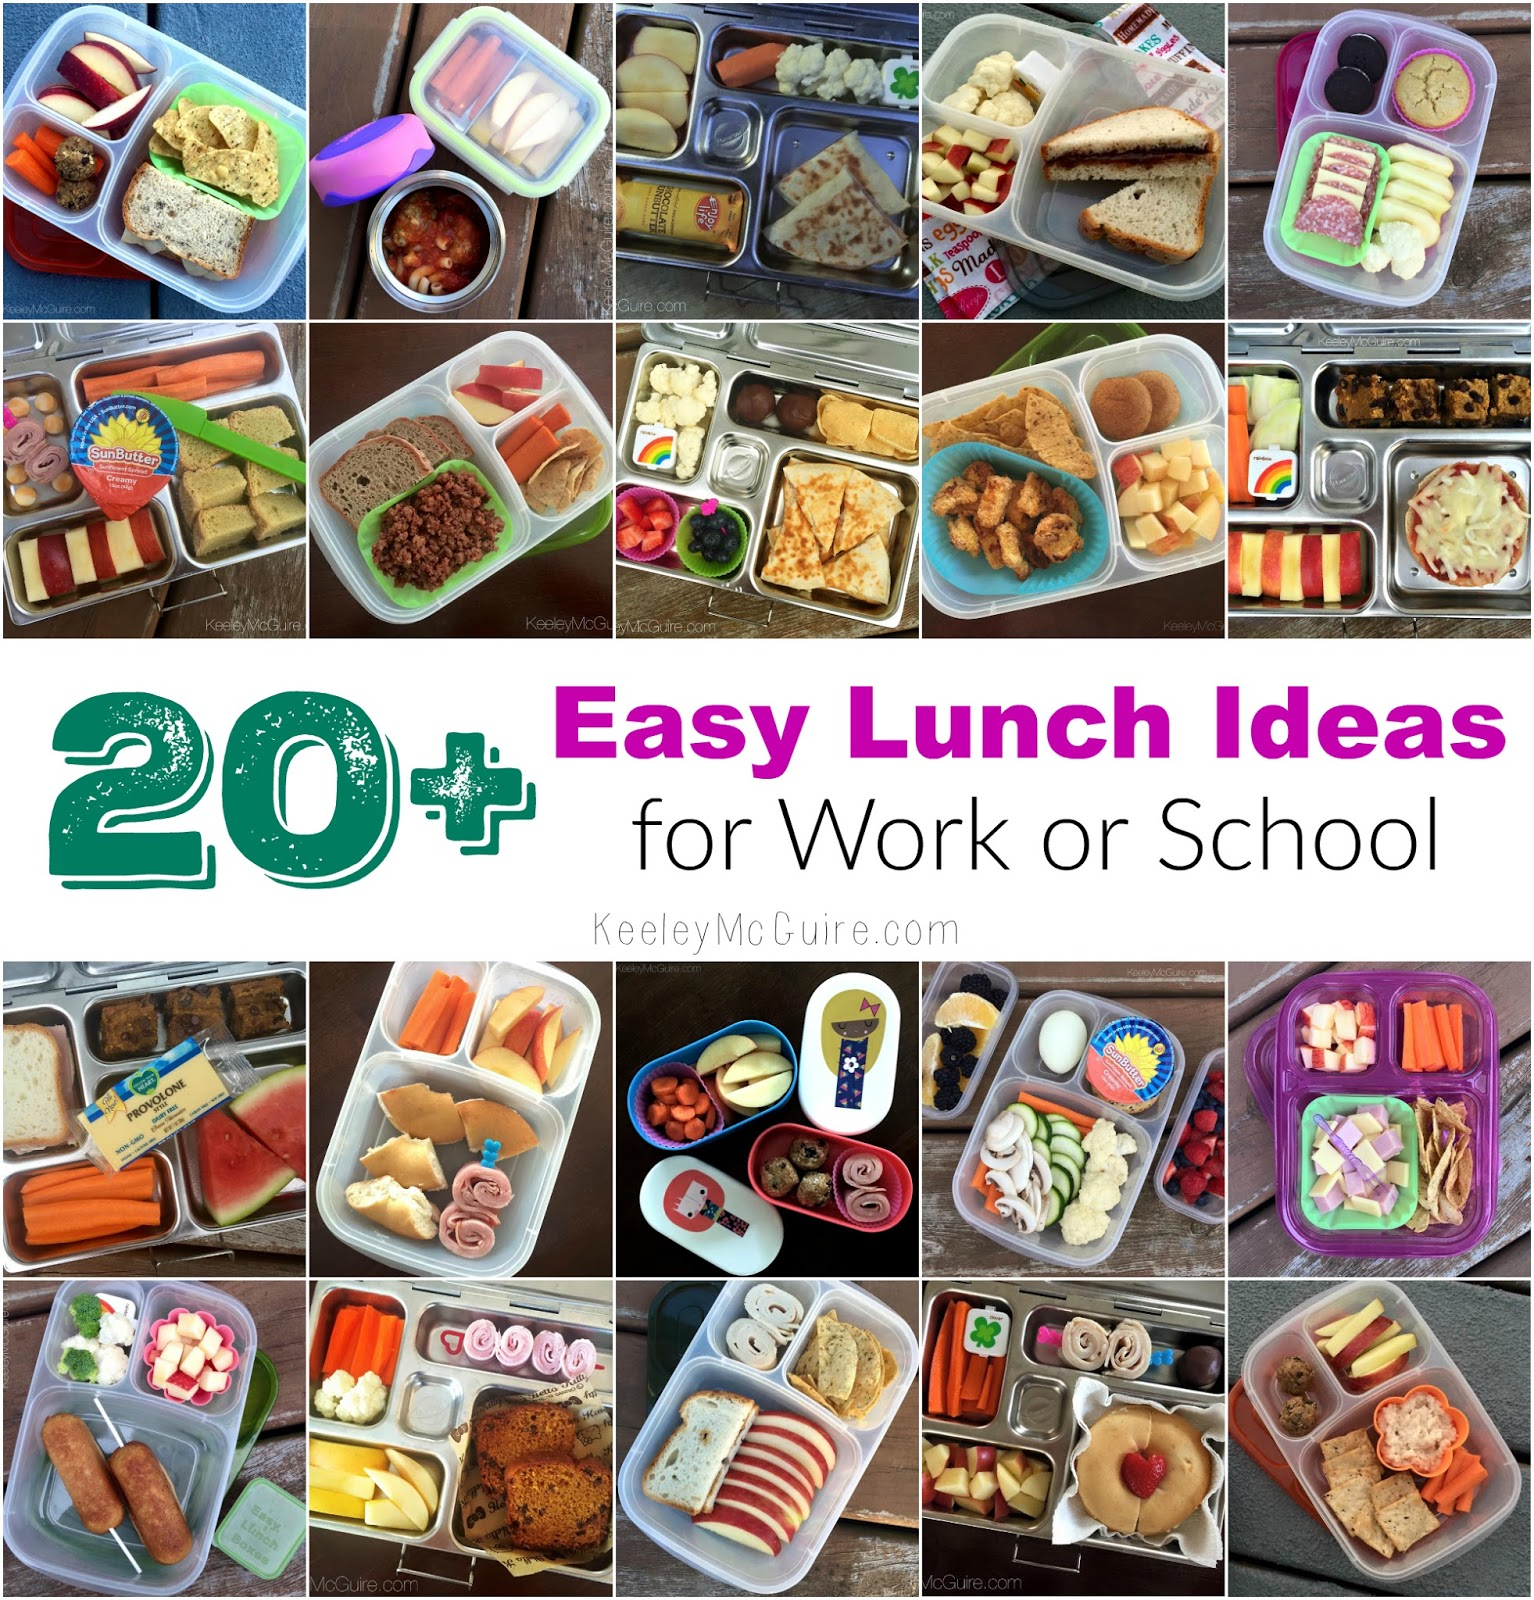 Gluten free allergy friendly 20 easy lunch ideas for work or school 20 easy lunch ideas for work or school forumfinder Image collections